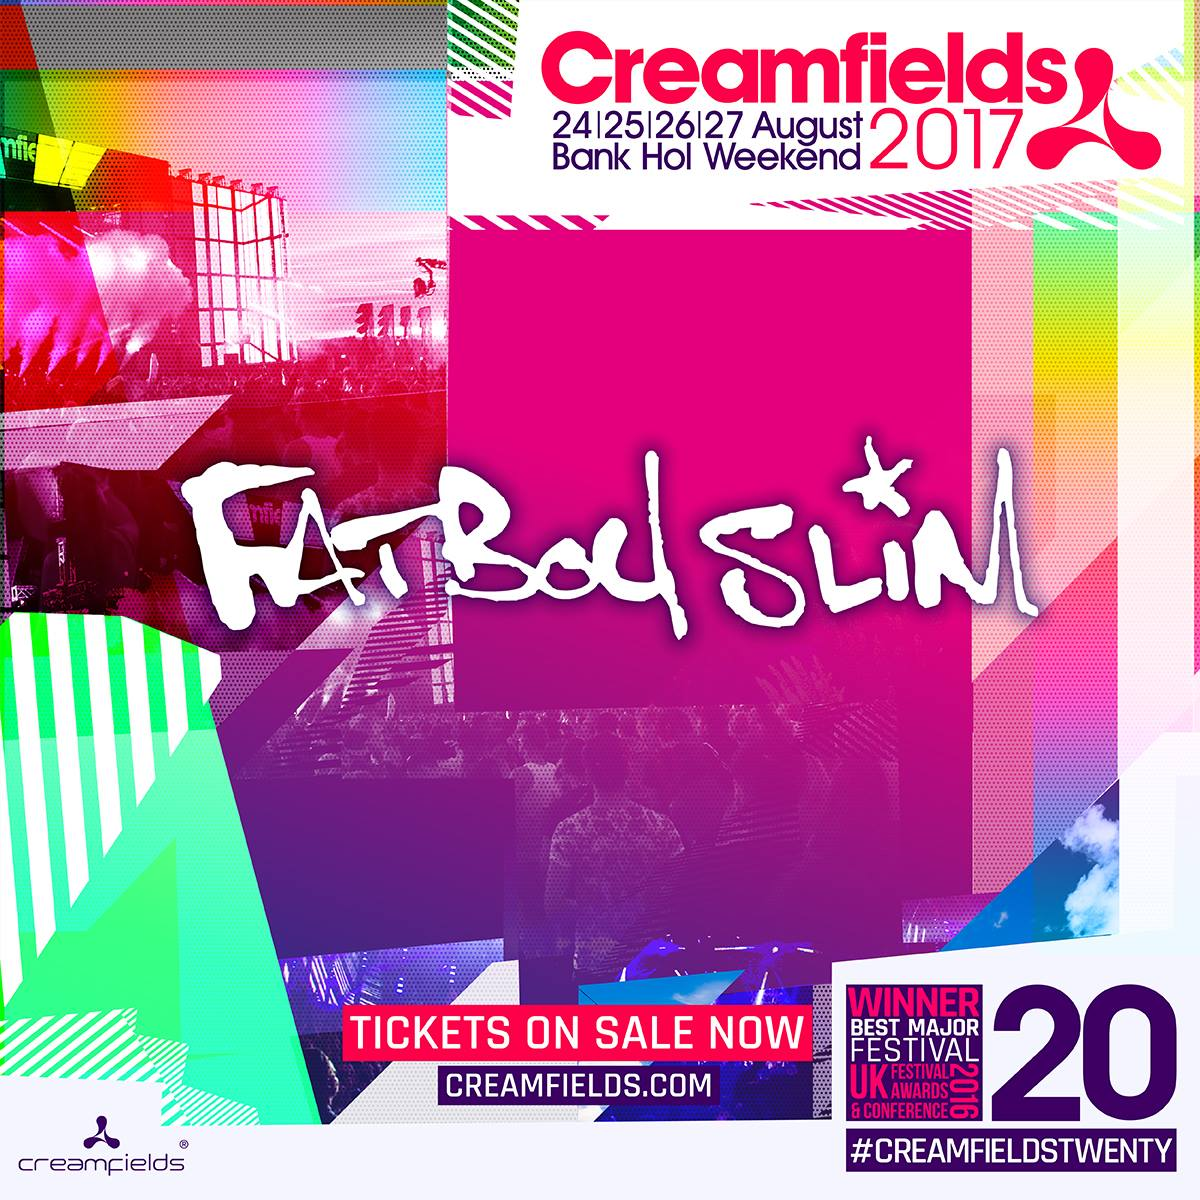 Gigs Image 1 for Creamfields